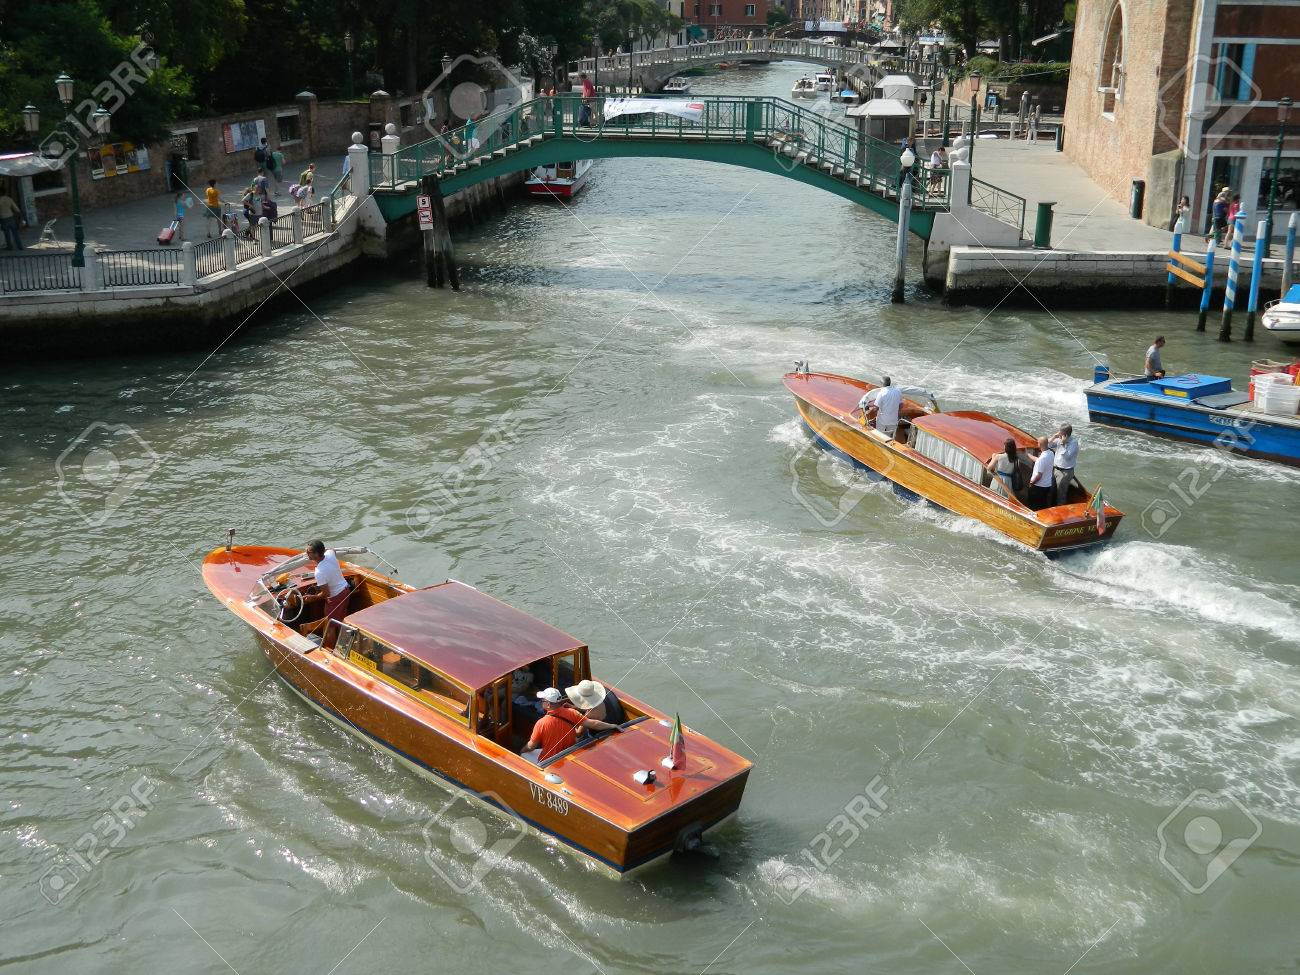 VENICE, ITALY - 6 JULY 2015 Wooden Venice taxi motorboat with passengers water taxi in Grand Canal Stock Photo - 55334615